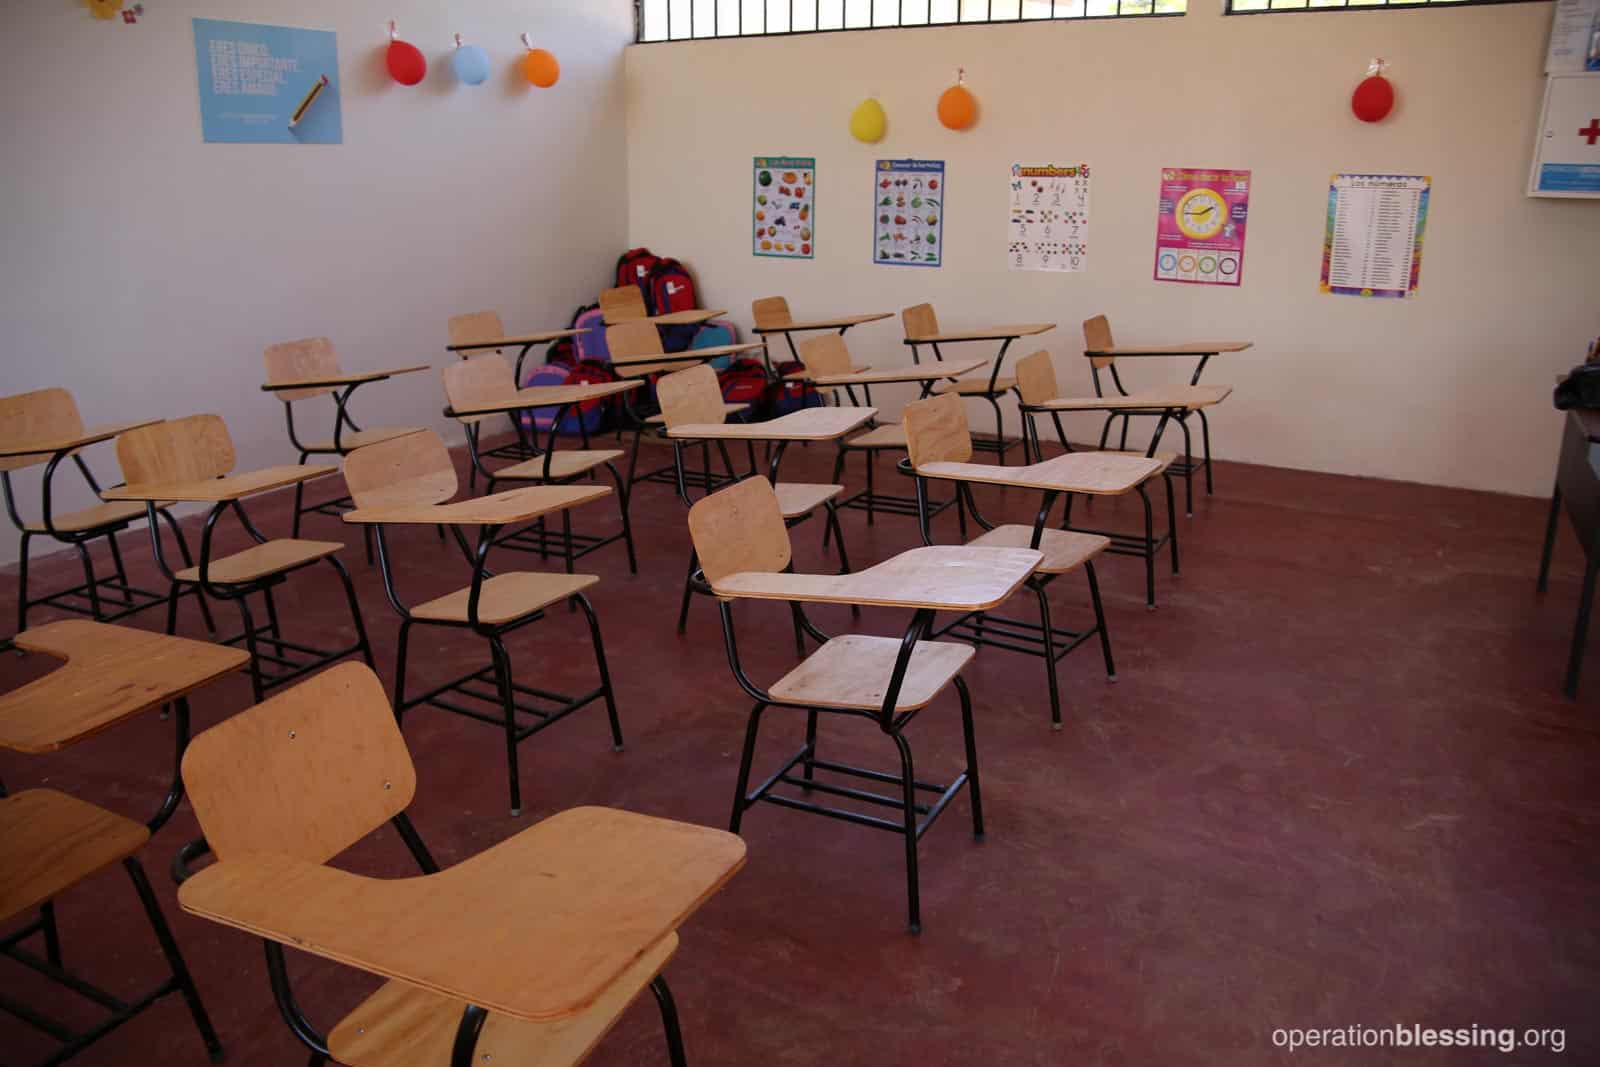 New desks adorn one of the classrooms of Marlon and Cristian's school.